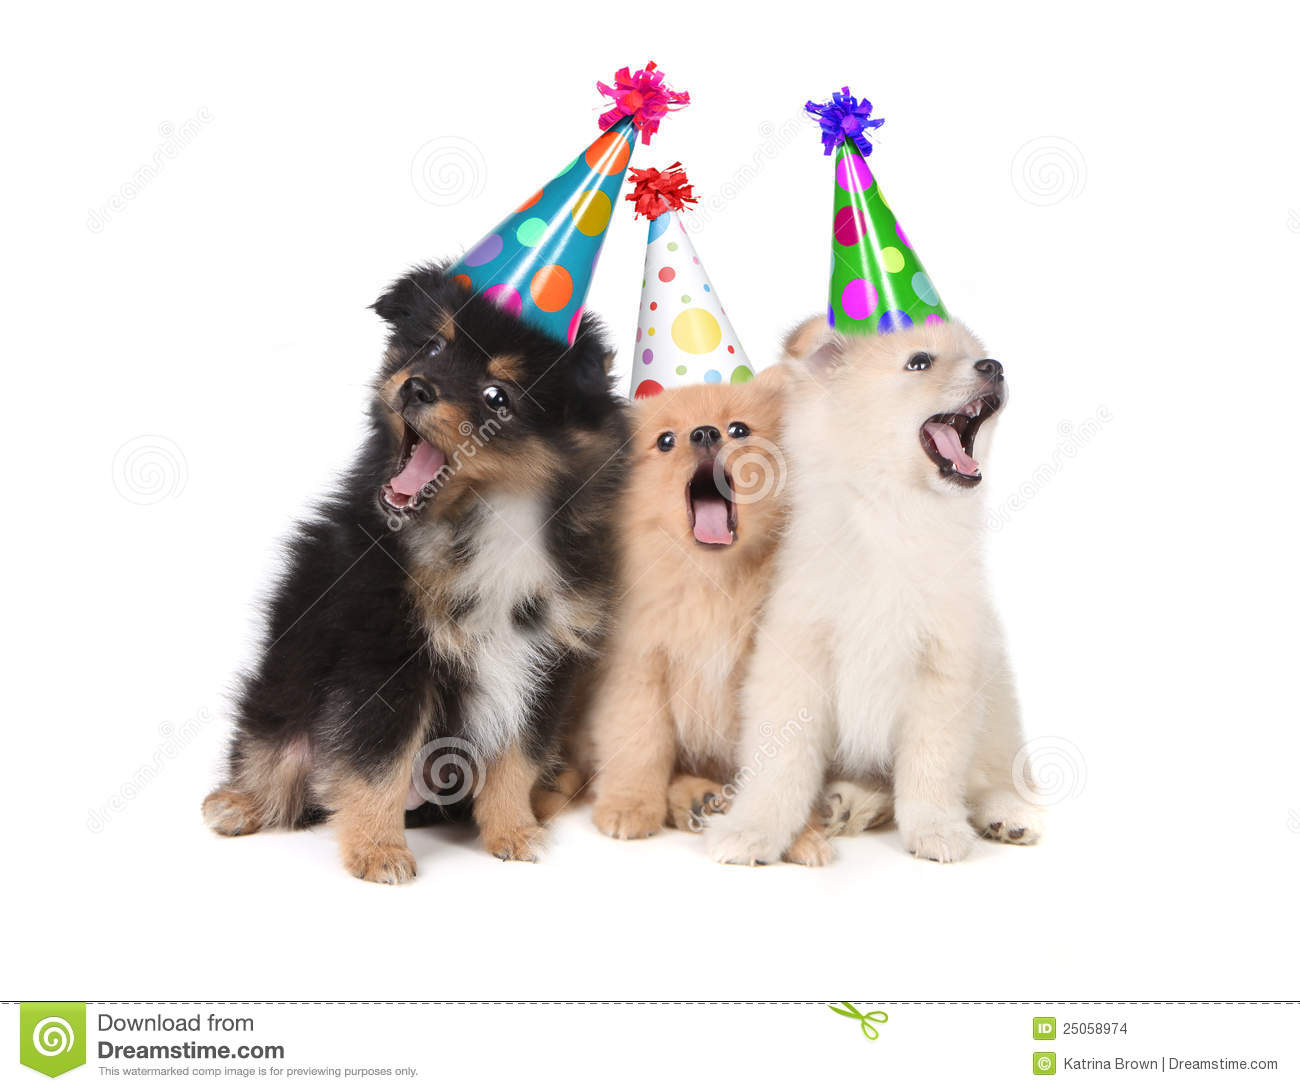 Humorous Puppies Singing The Happy Birthday Song Wearing Silly Hats